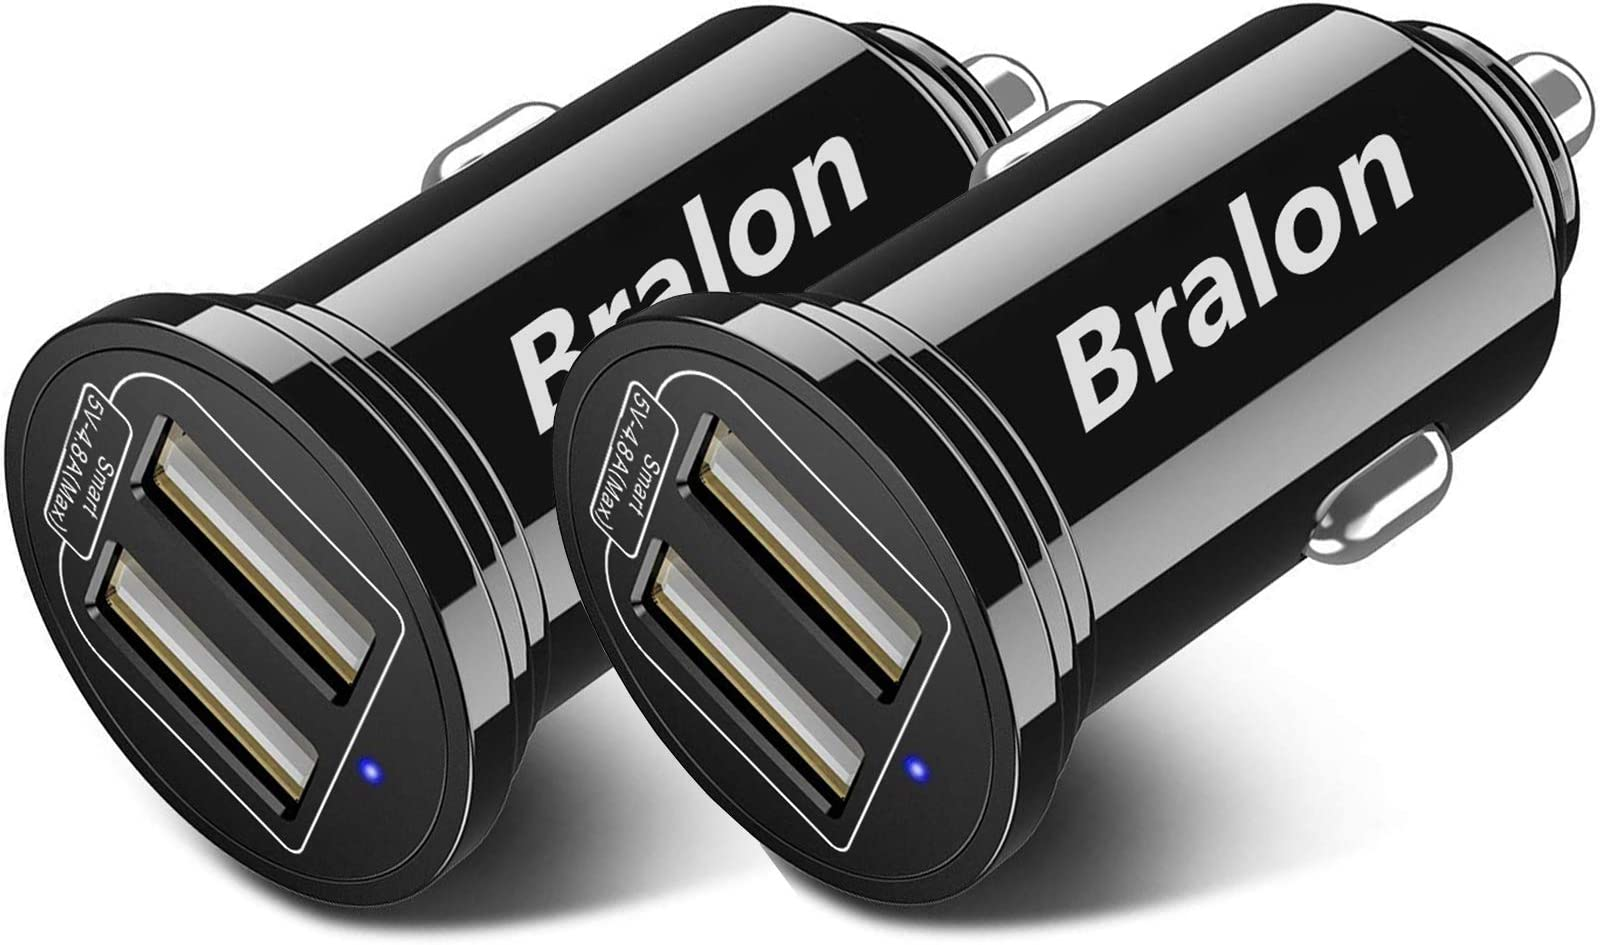 USB Car Charger[2-Pack],Bralon Fast Car Charger with 24W/4.8A Output Flush Compatible with iPhone 12/12 Pro/11 Pro(Max)/Xs(Max)/Xr/X/8/7,Galaxy Note S10 S9 S8 S7 and More